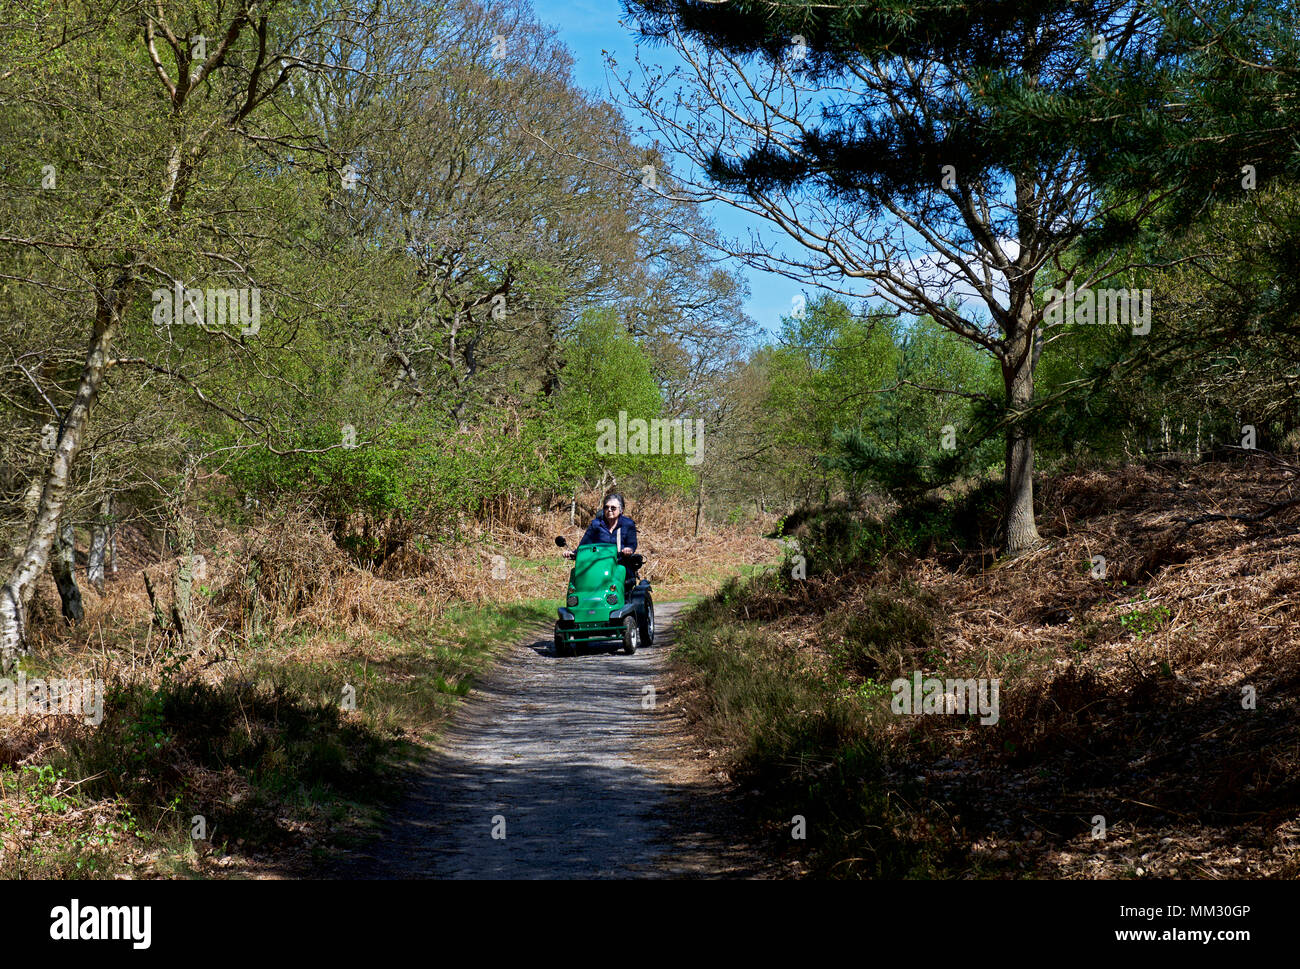 Senior woman on disability scooter, Dunwich Heath, Suffolk, England UK - Stock Image